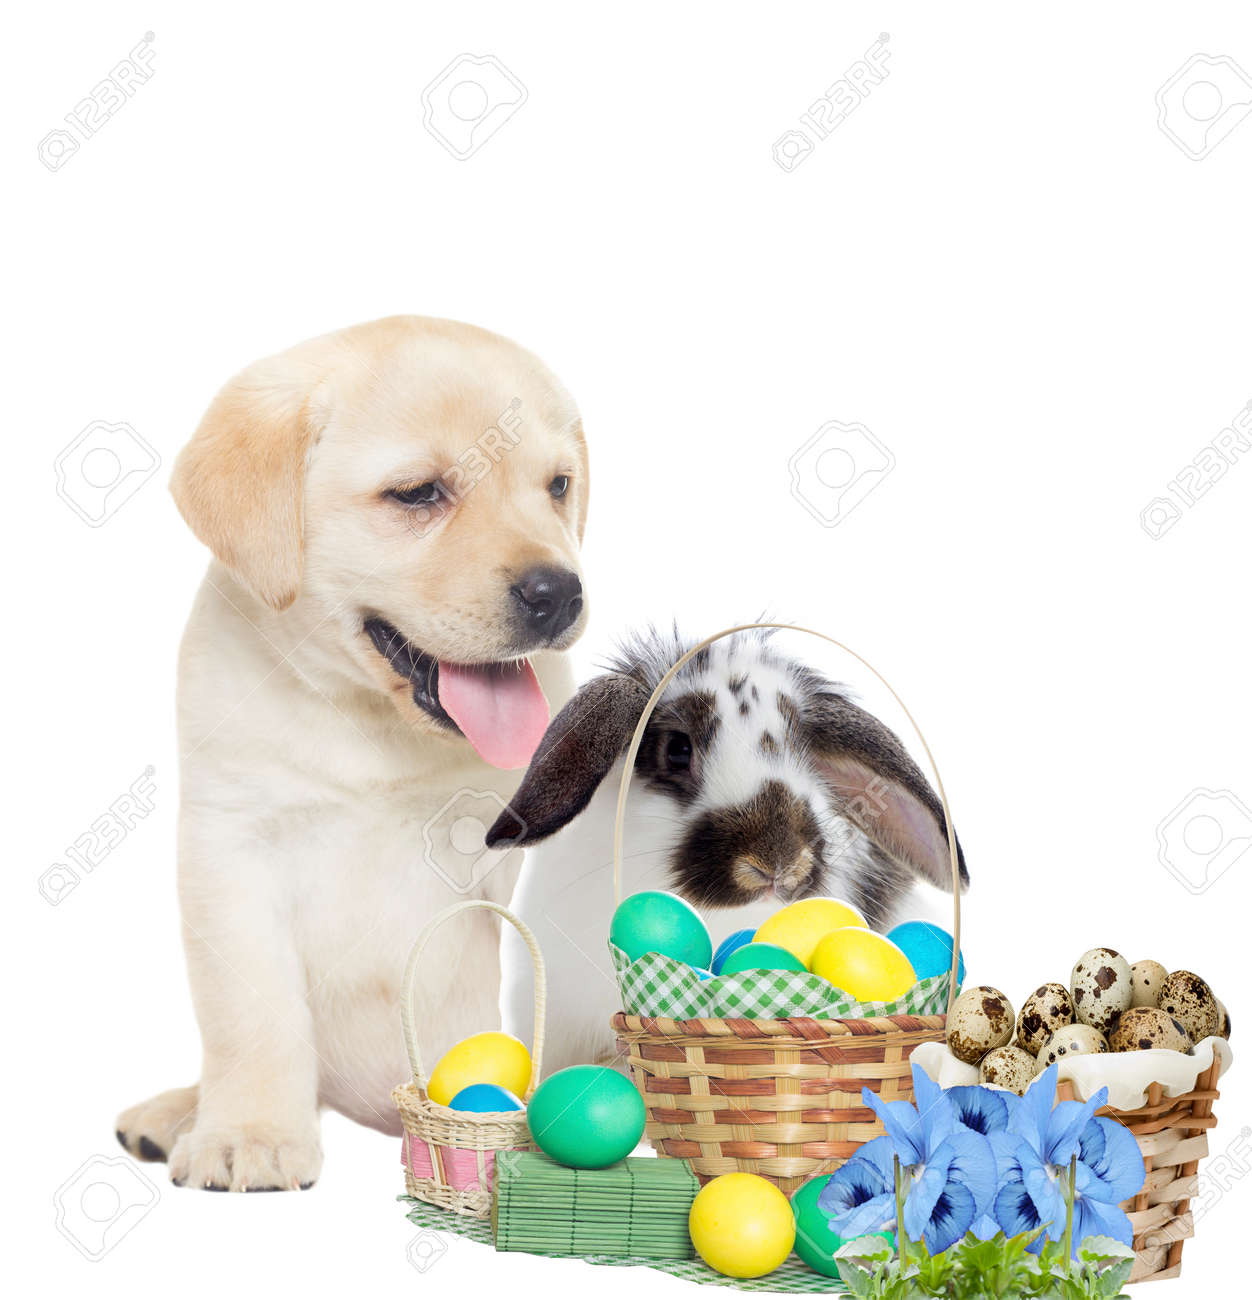 Easter bunny and puppy - 57324050